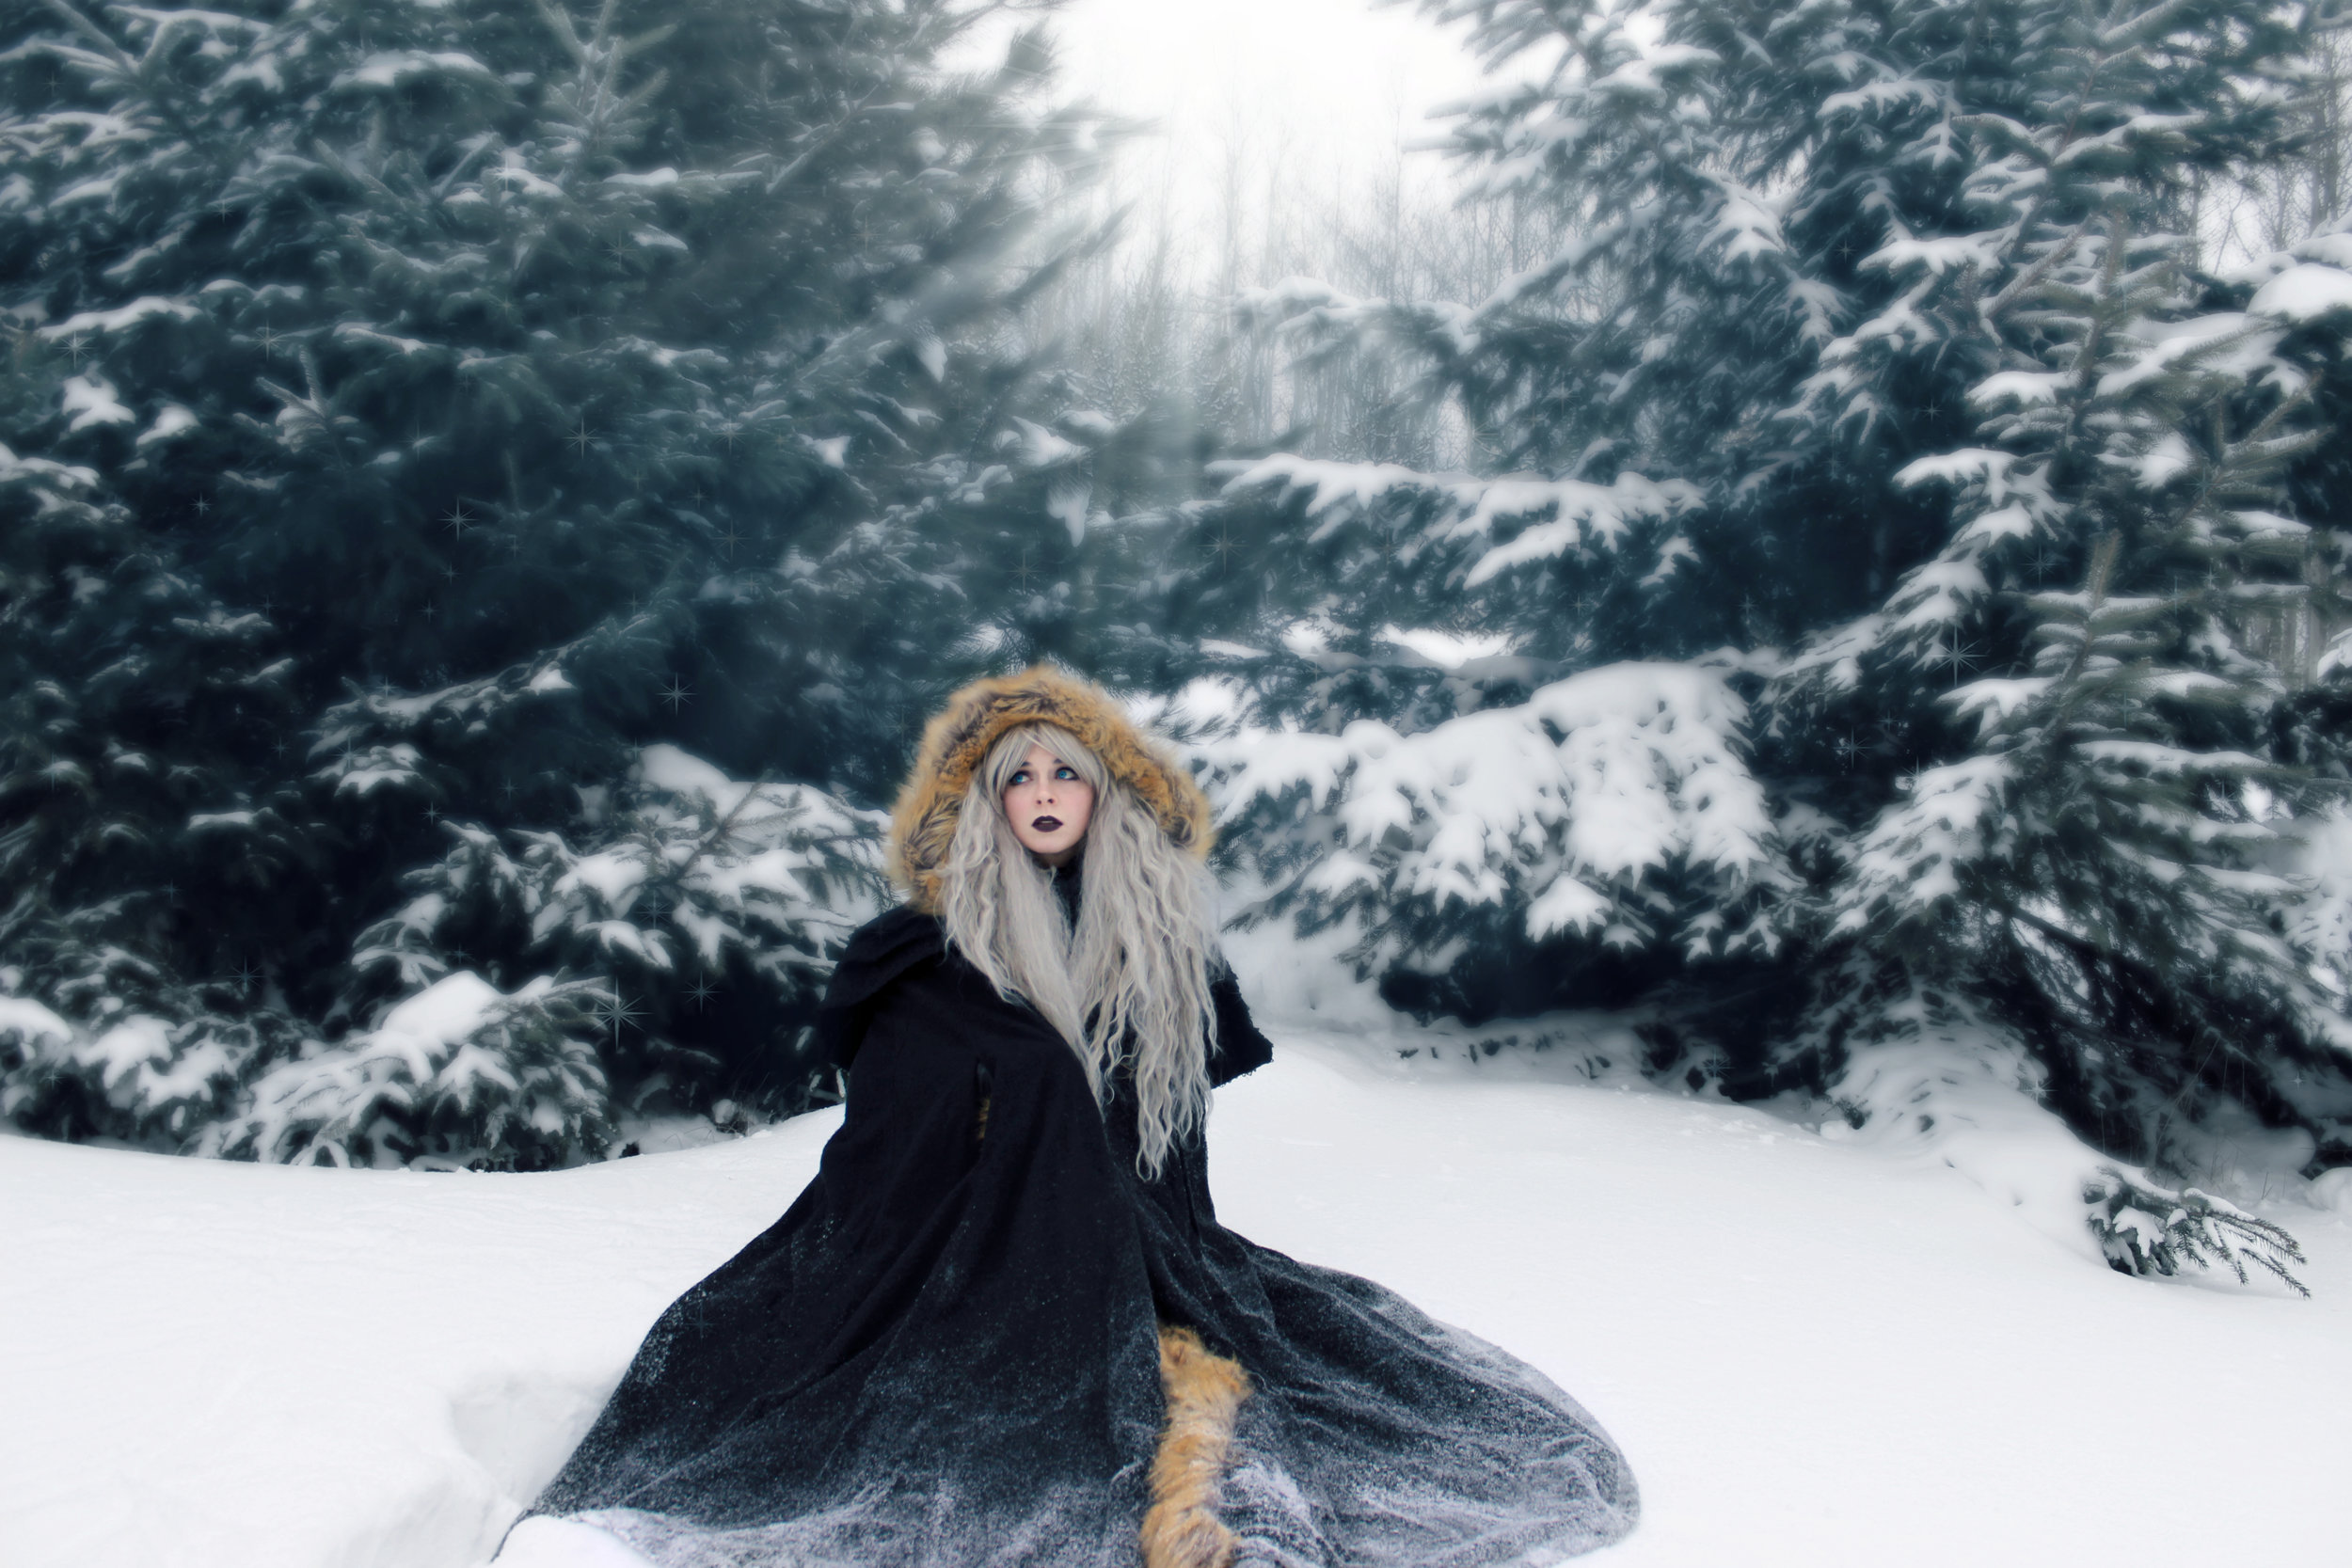 mermaid-phantom-in-the-snowy-forest-CAPE-blueblur.jpg